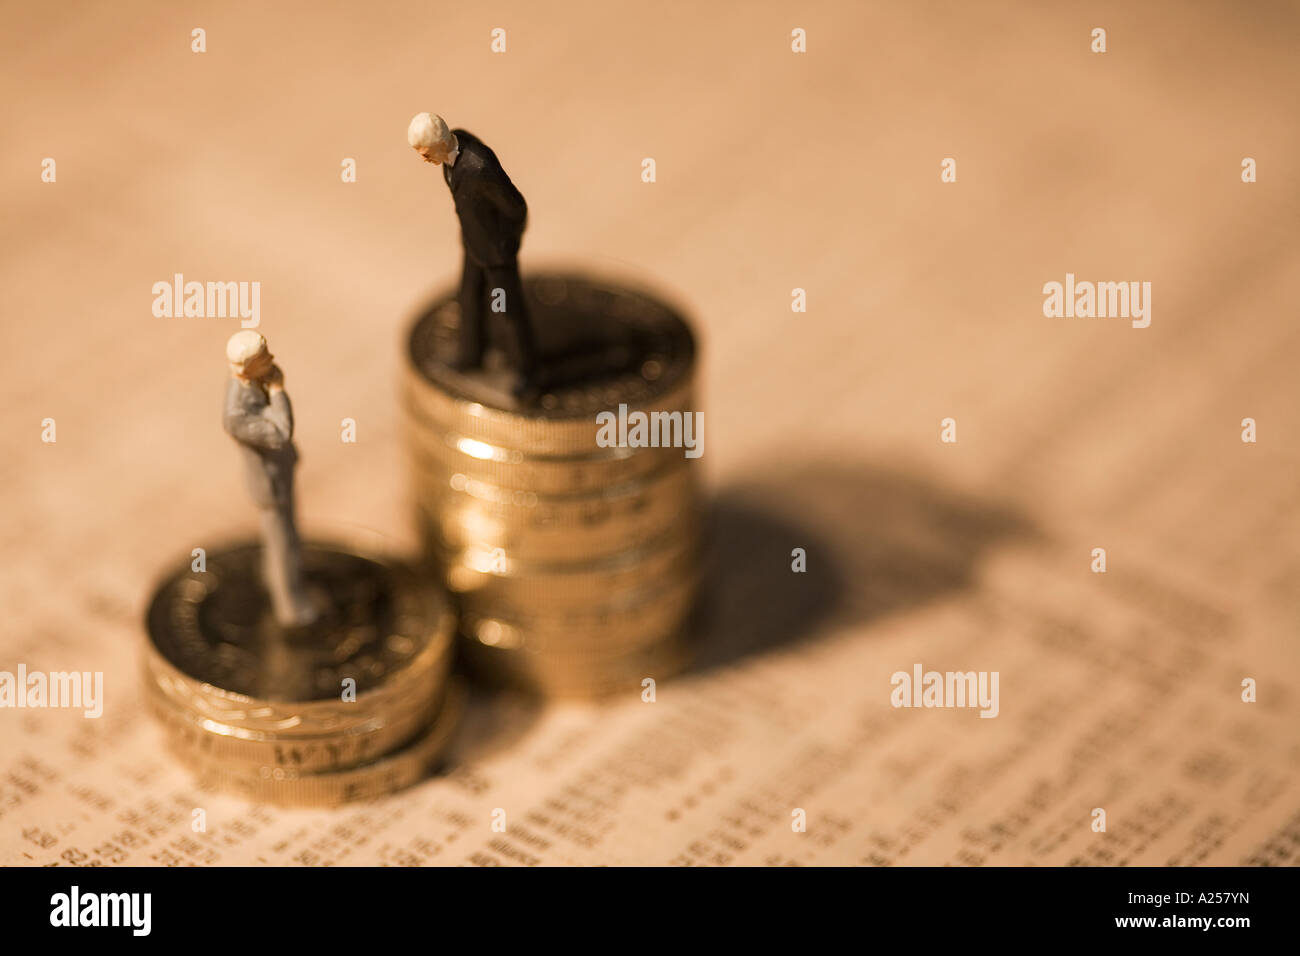 Miniature businessmen standing on coins on financial newspaper - Stock Image